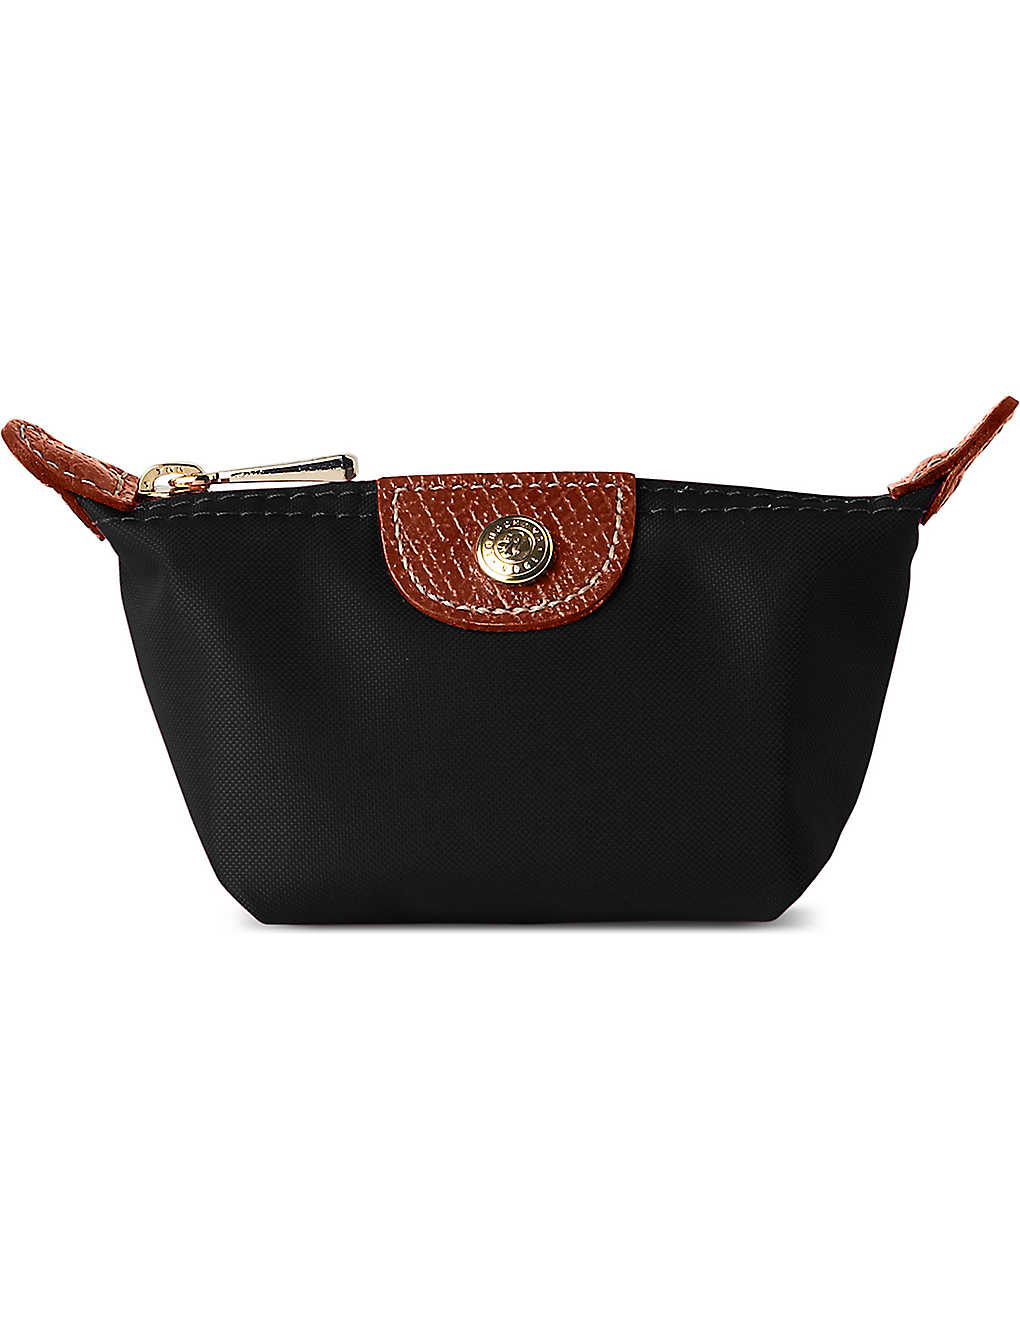 LONGCHAMP - Le Pliage small coin purse  3bd470680fcb8